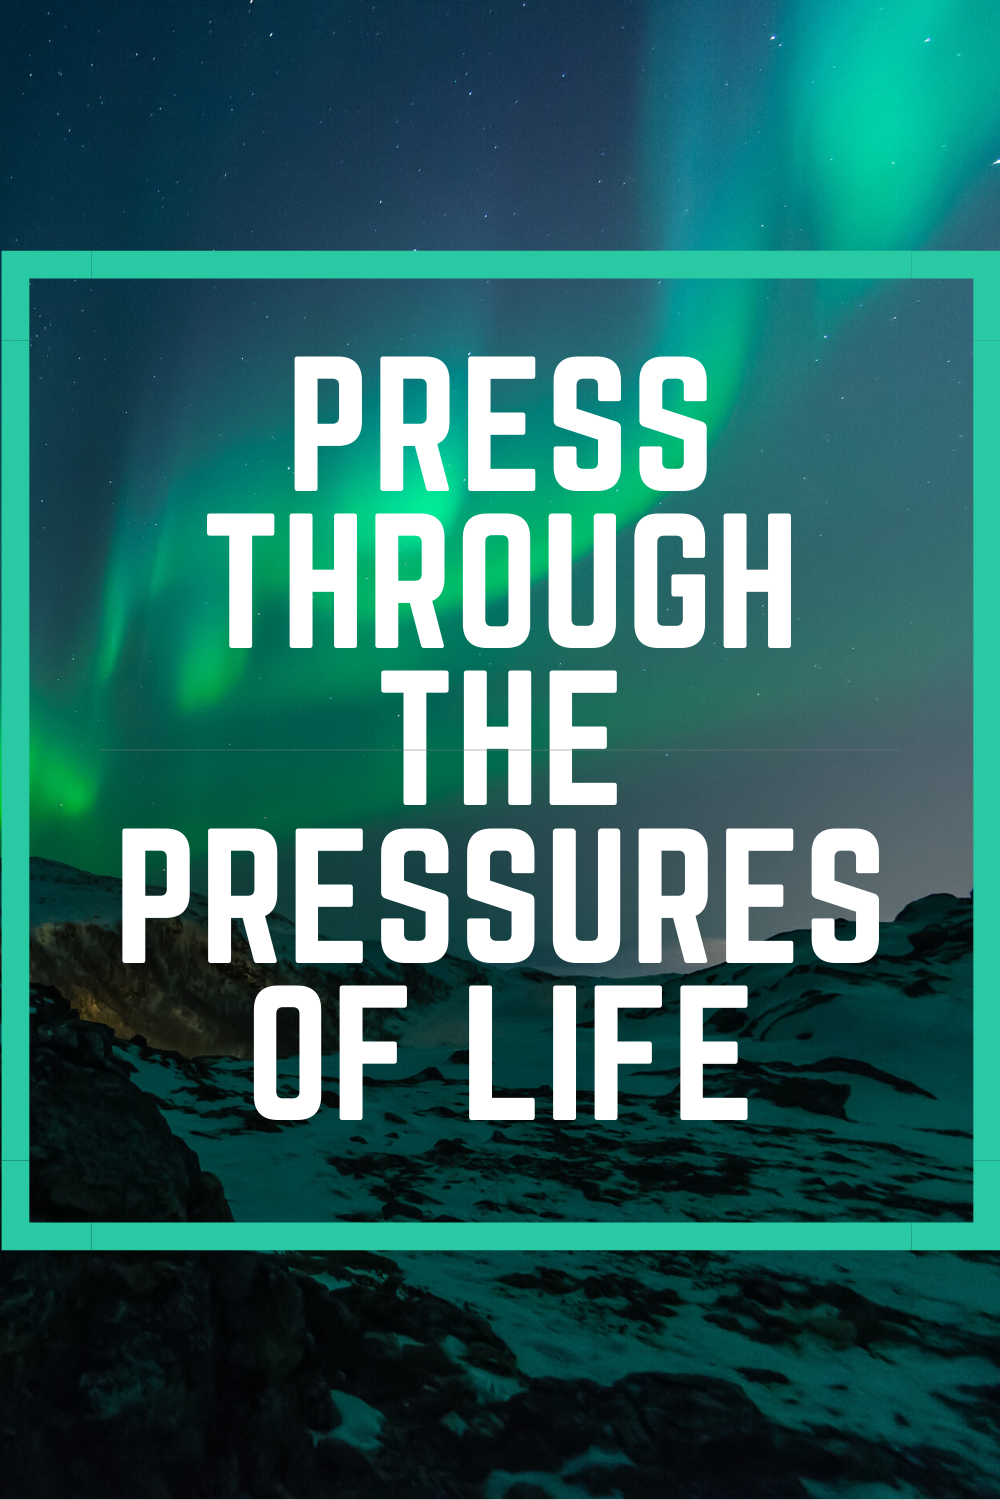 PRESS THROUGH THE PRESSURES OF LIFE